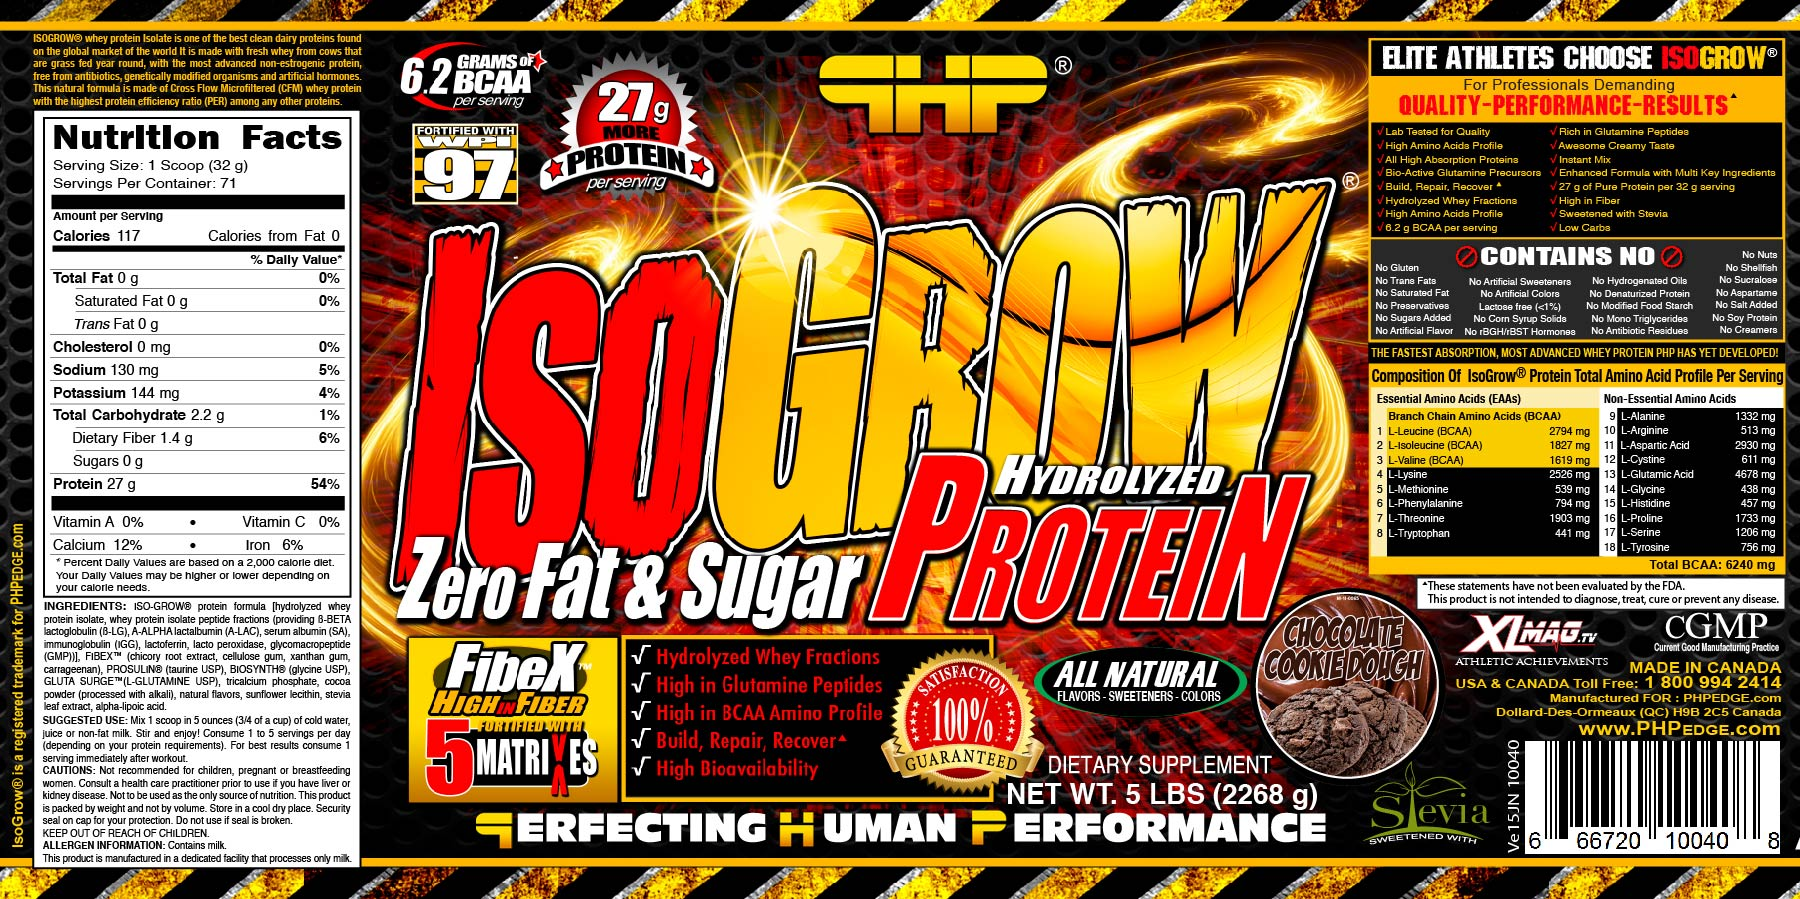 ISOG 2268-CHOC-10040 ISOGROW CHOCOLATE COOKIE DOUGH5 Lbs LABL USA VE15JN